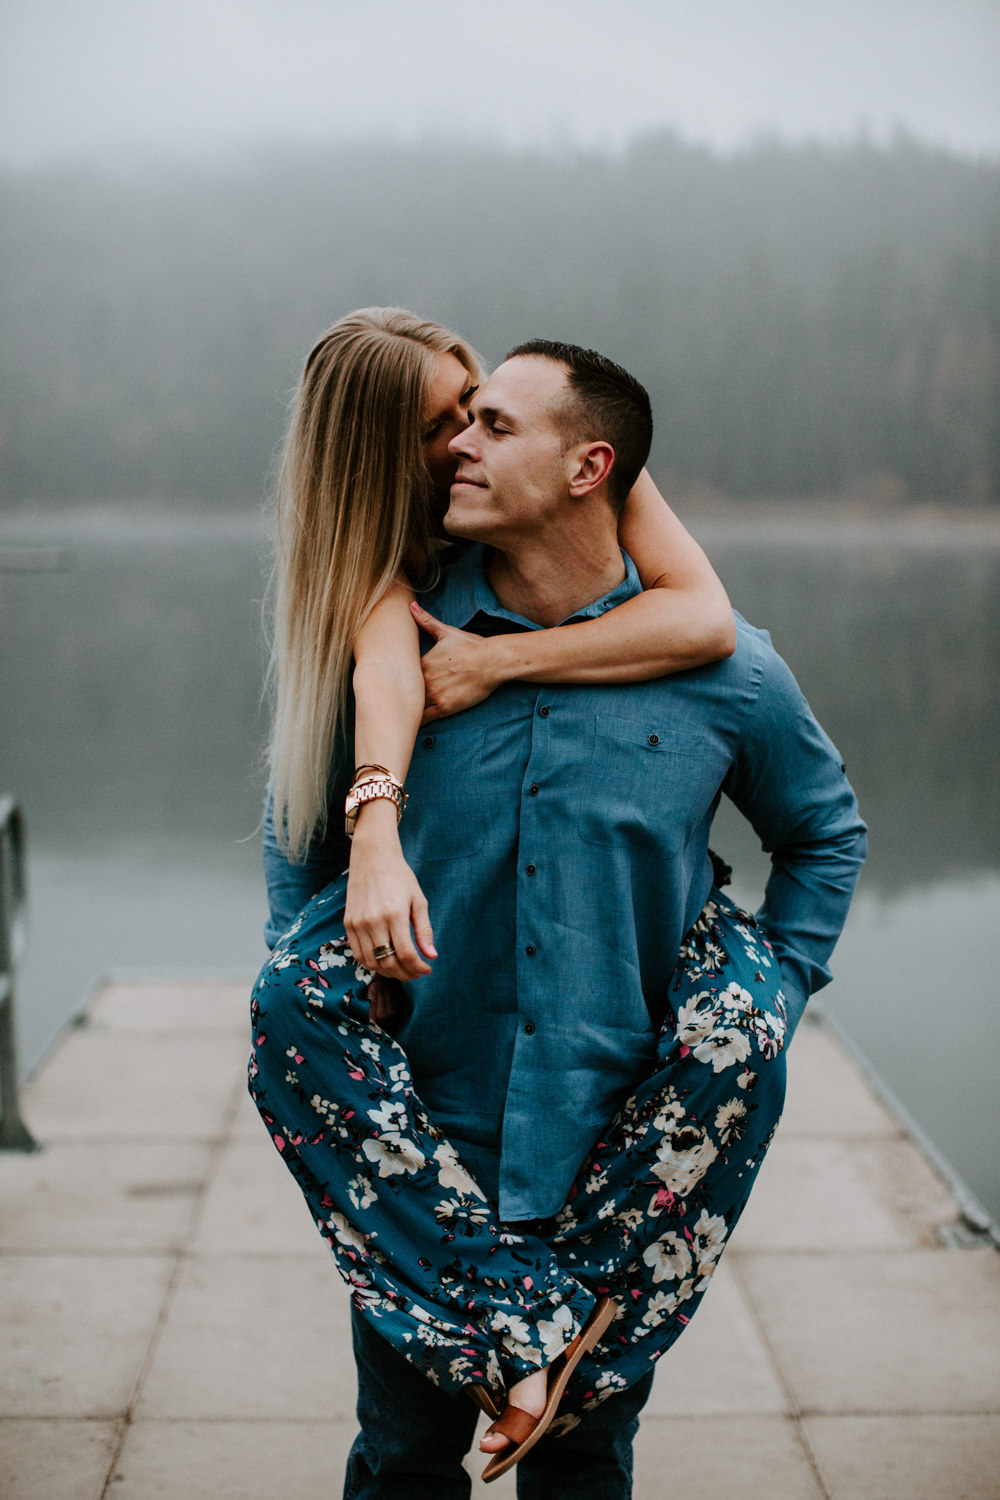 couple-intimate-engagement-session-northern-california-40.jpg